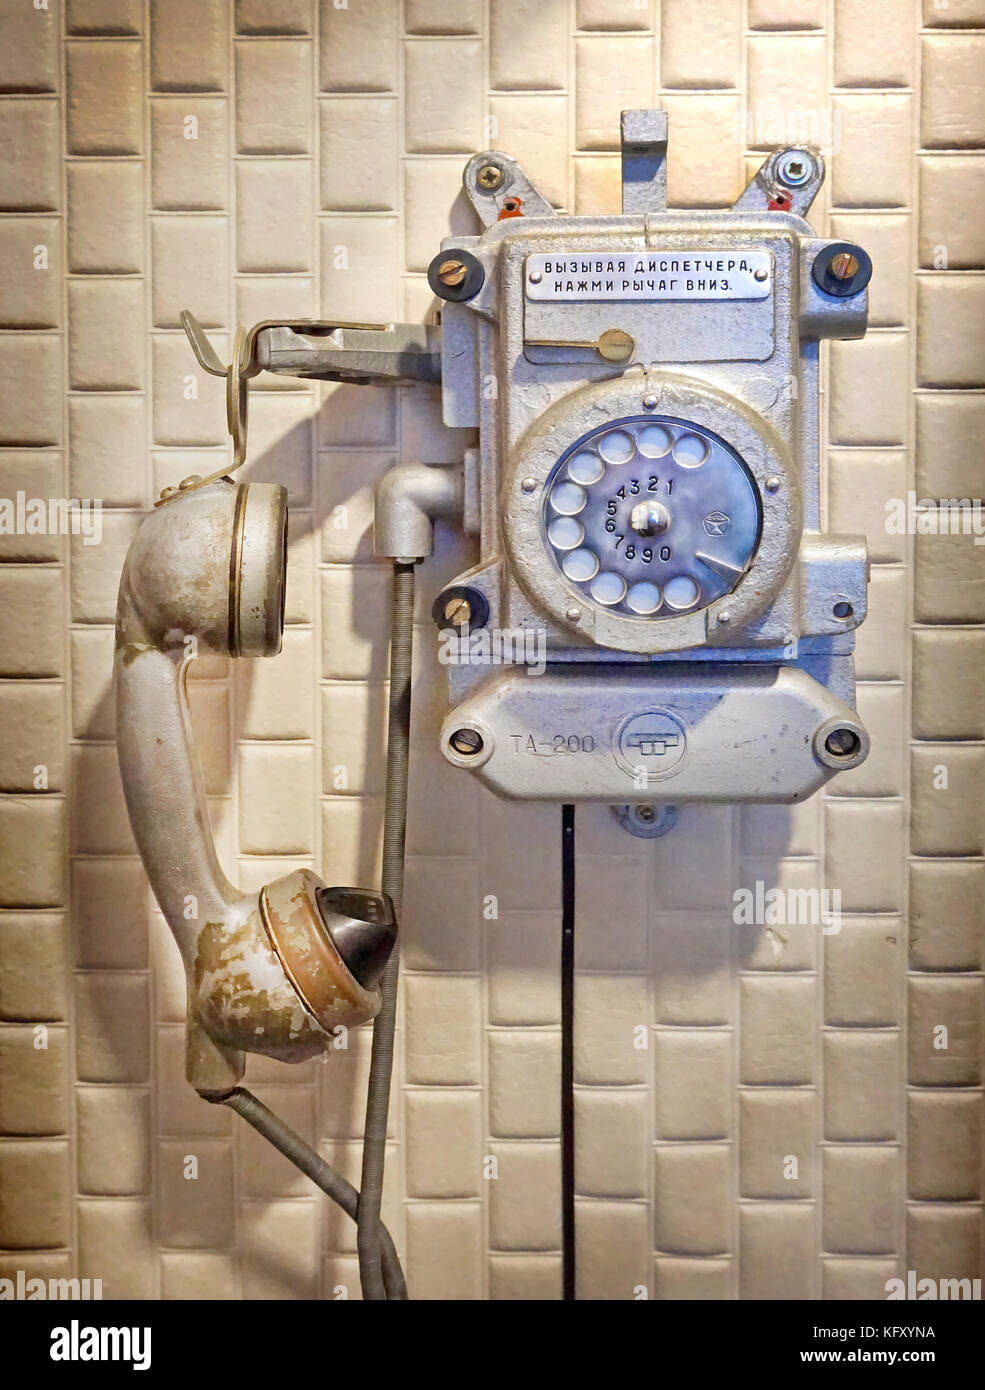 Phone hanging on the wall of the of the electronic surveillance room. The Museum of Genocide Victims aka The KGB - Stock Image